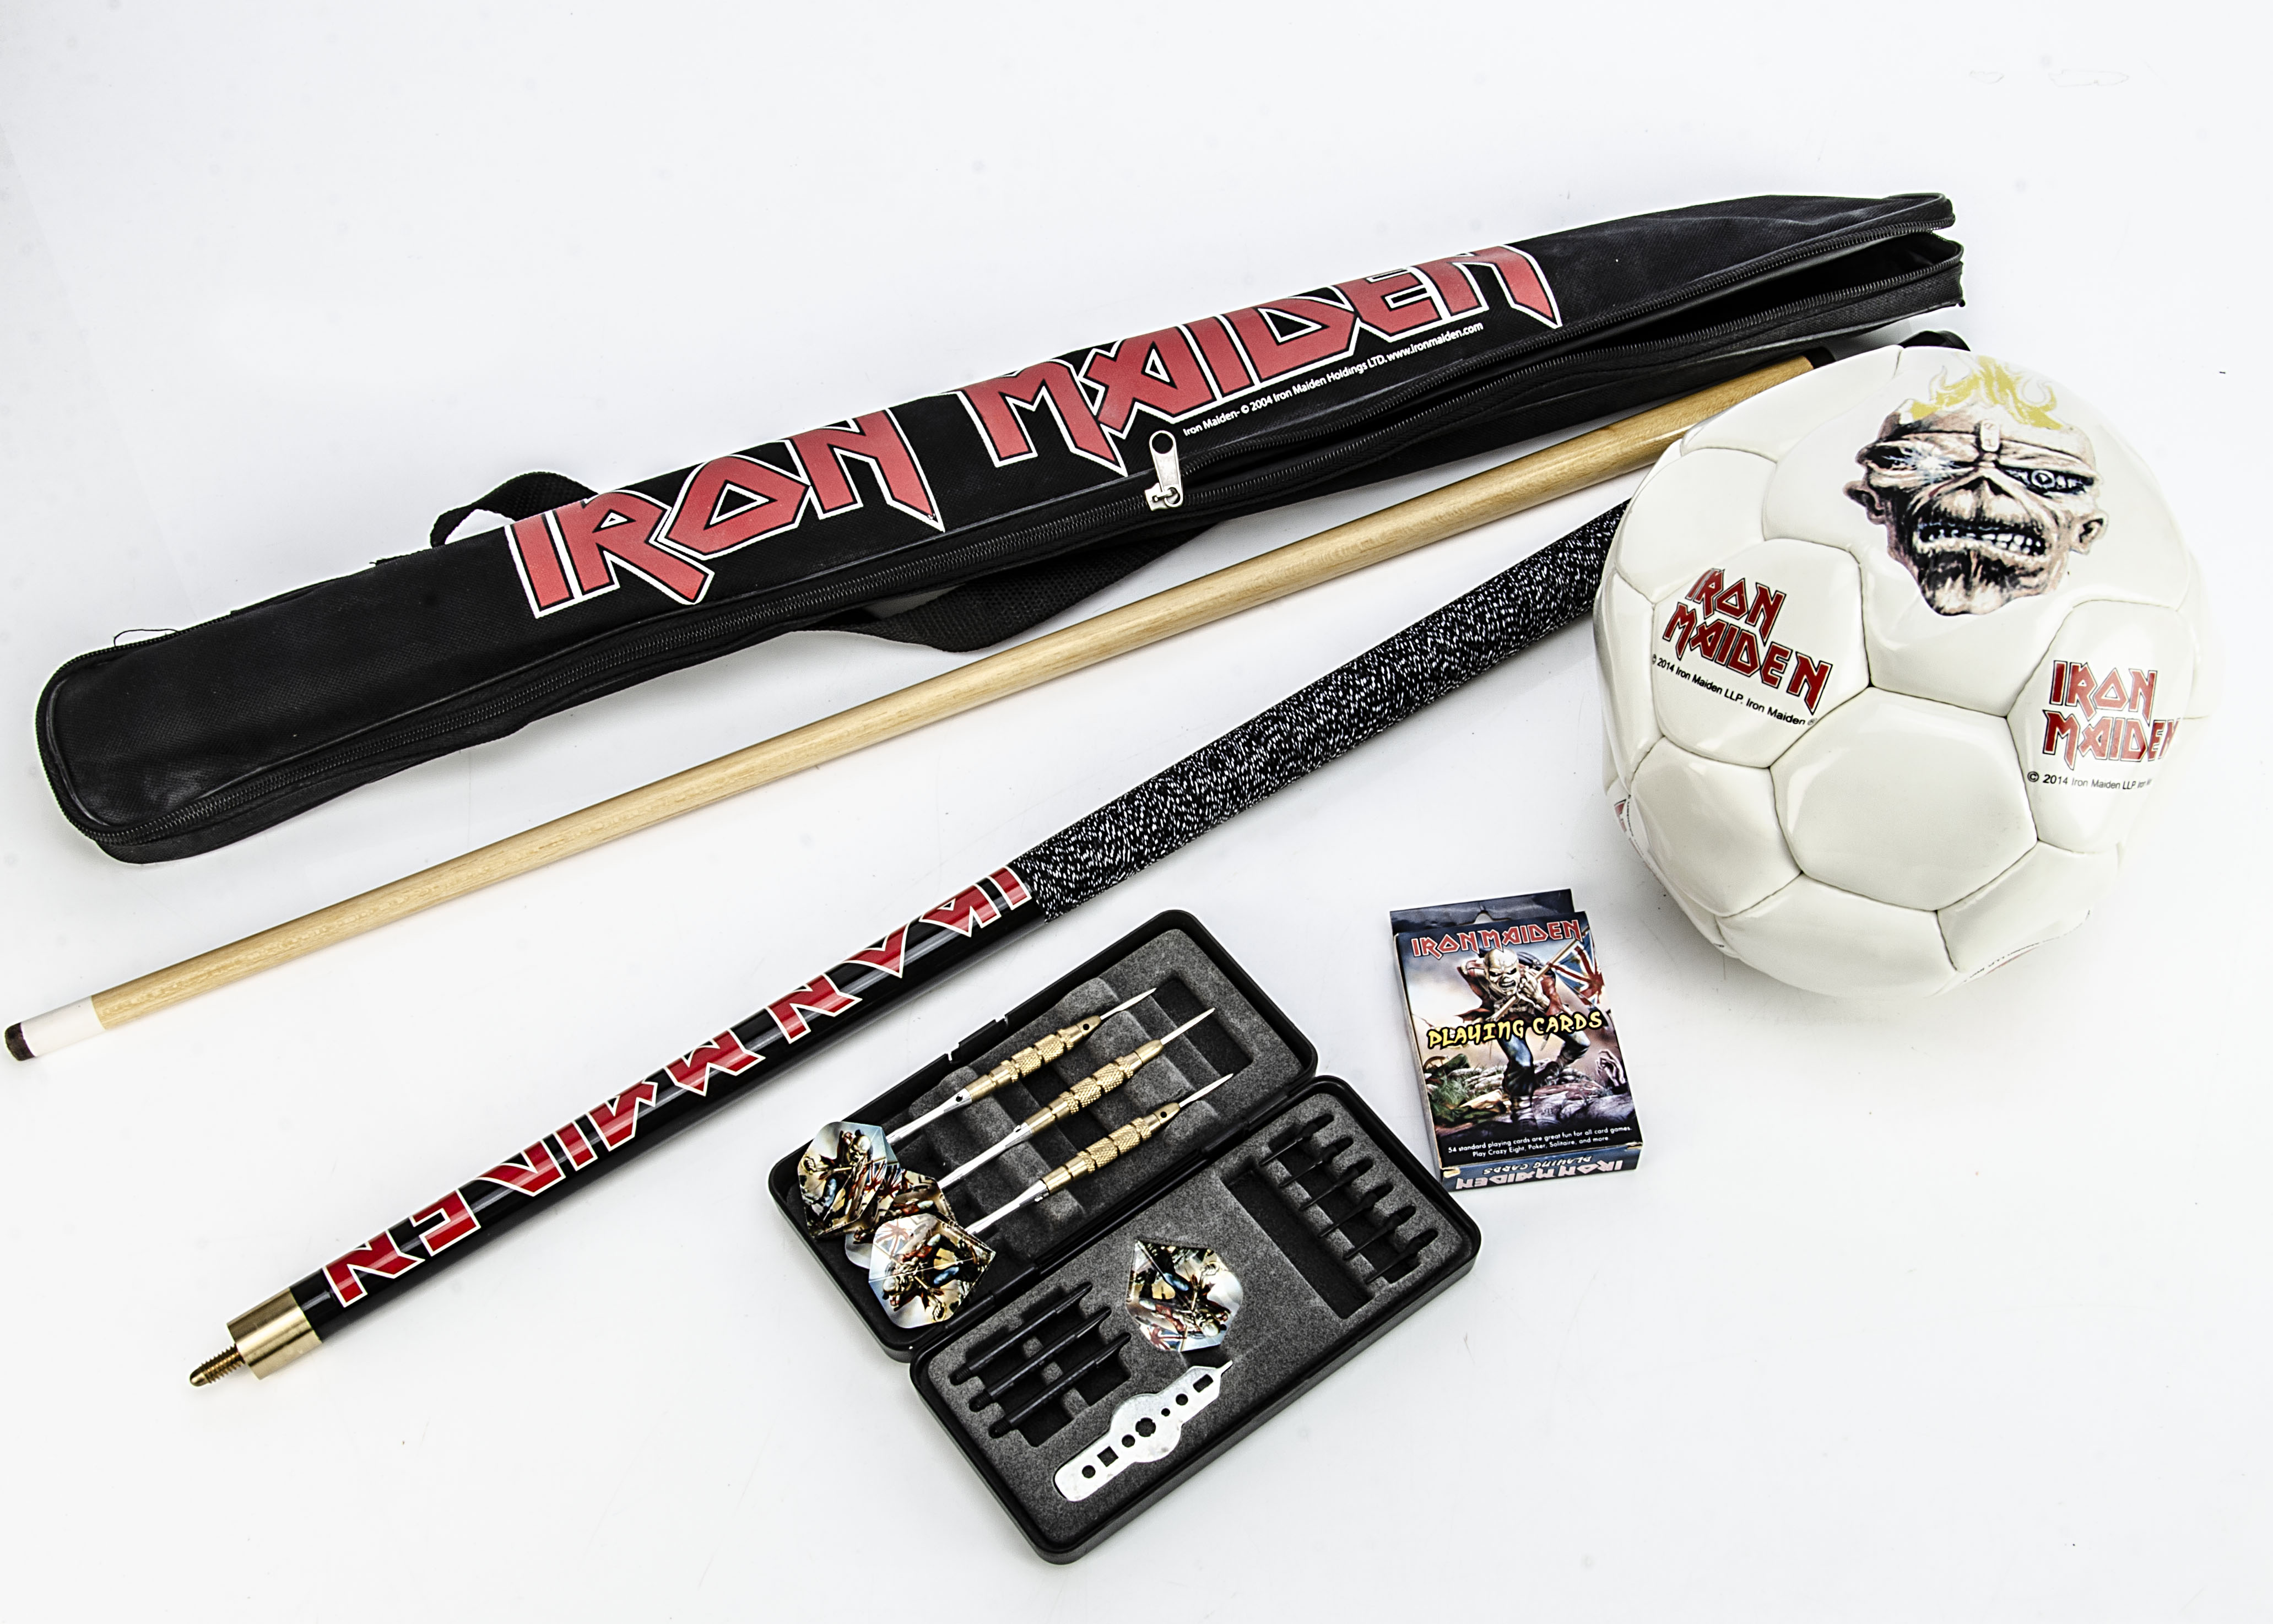 Iron Maiden Games / Sports, Iron Maiden Pool Cue in Bag, Iron Maiden Dart Set in tin with spare tips